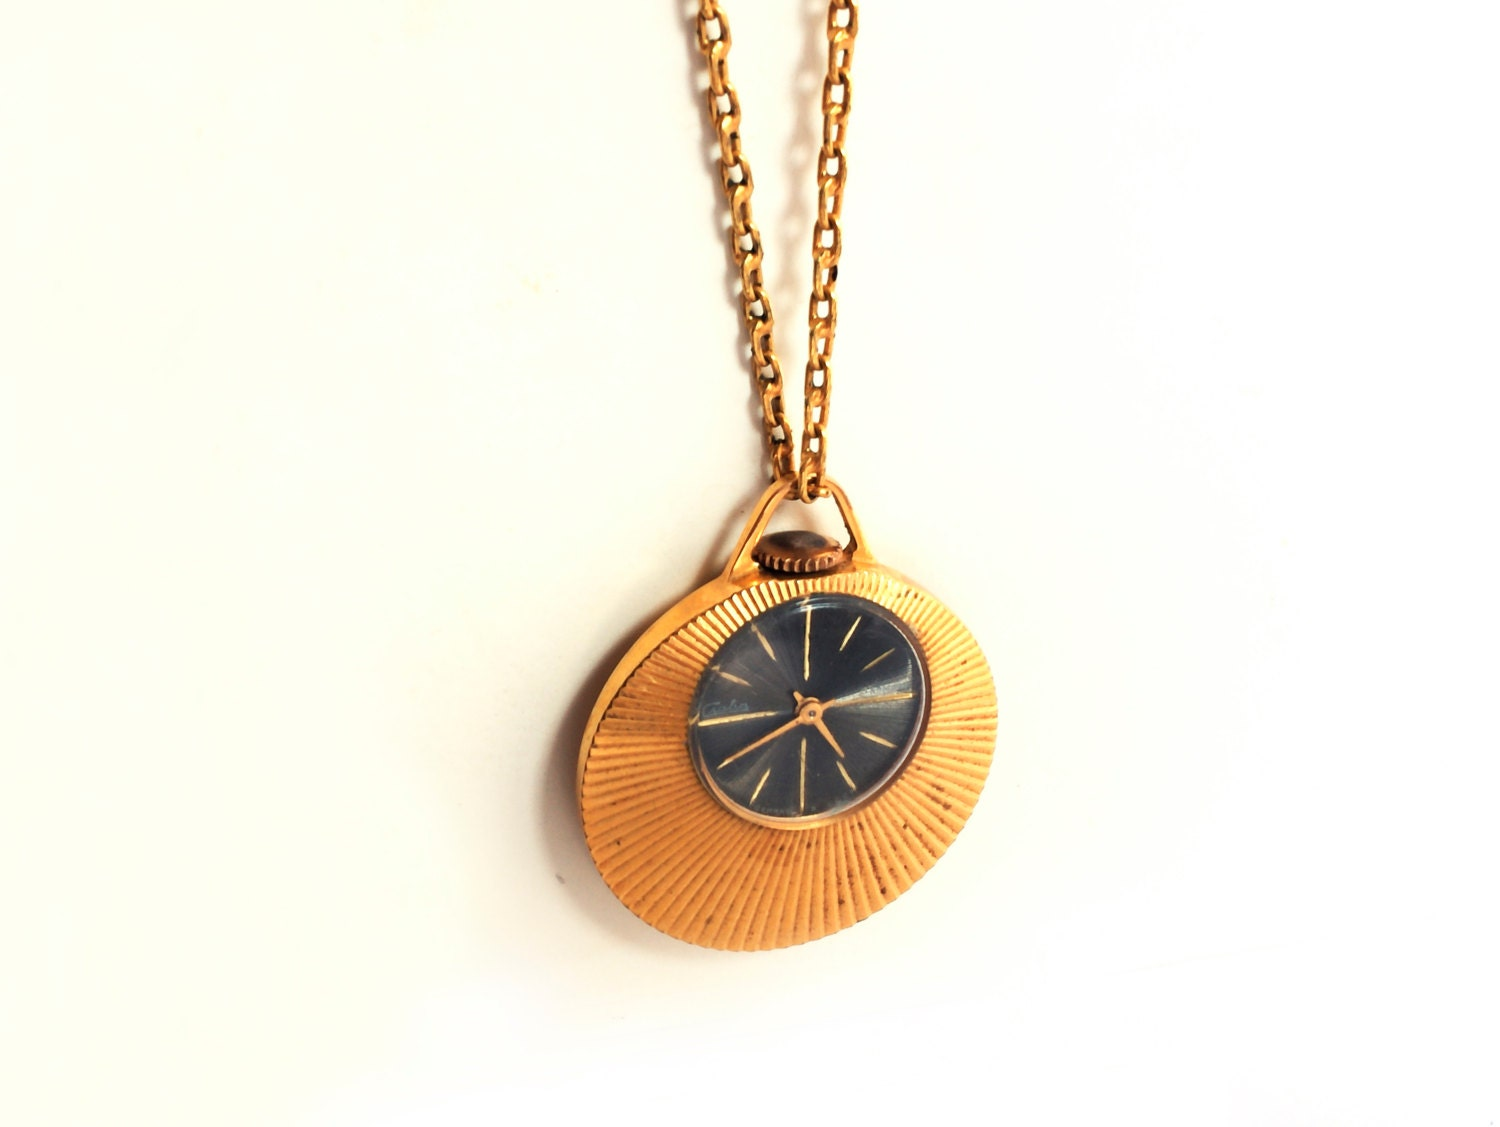 watch jewelry necklace pendant product mechanical bluependulum gear